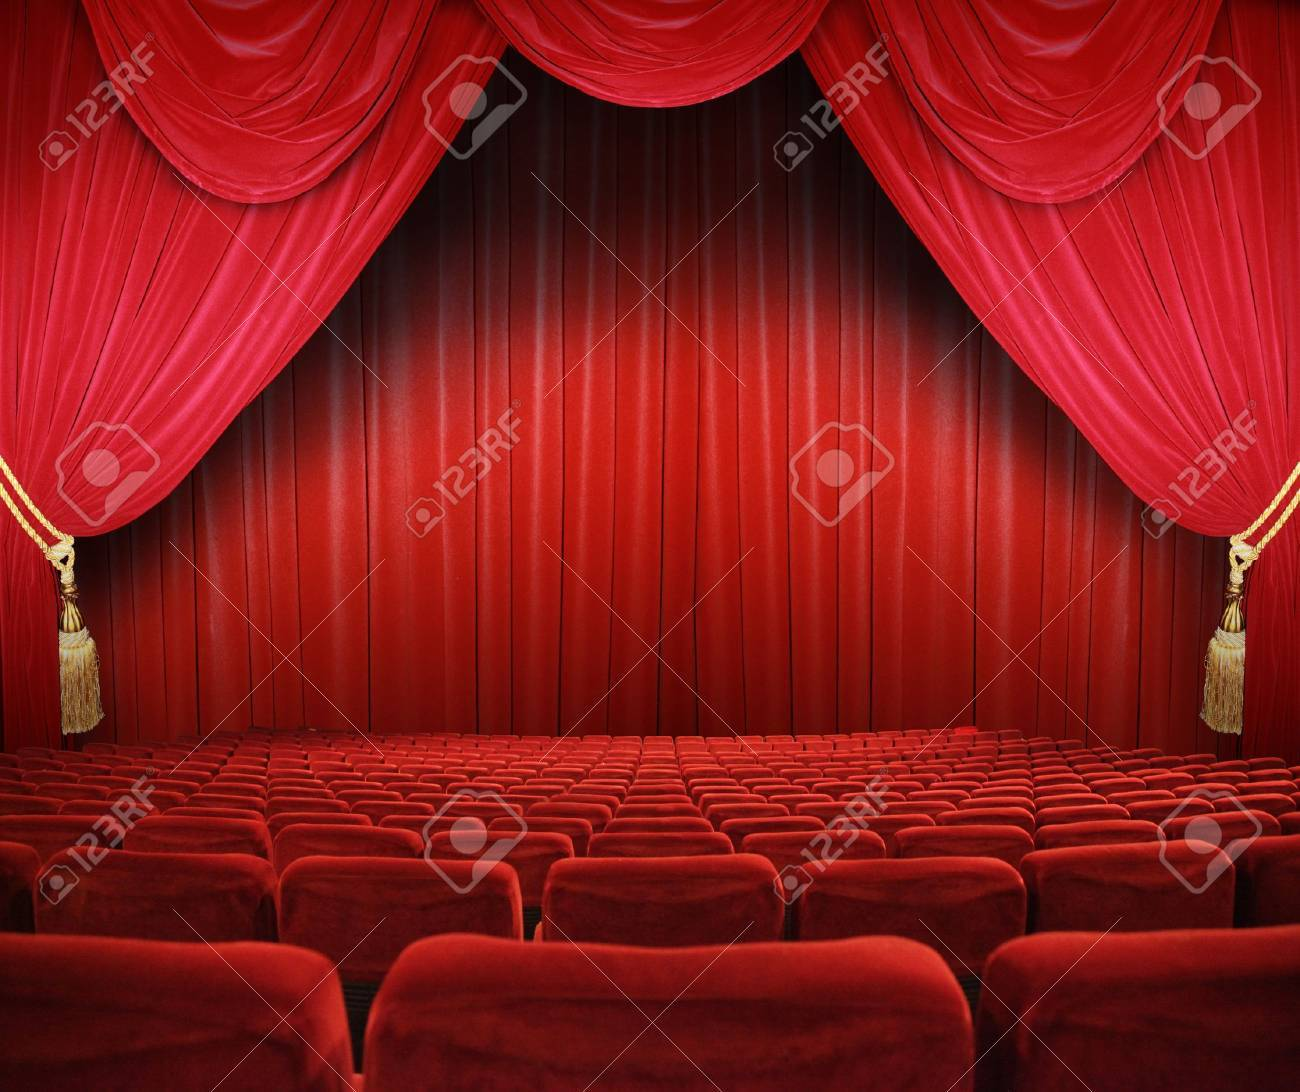 Closed theater curtains - Curtain Closed Classic Cinema With Red Seats